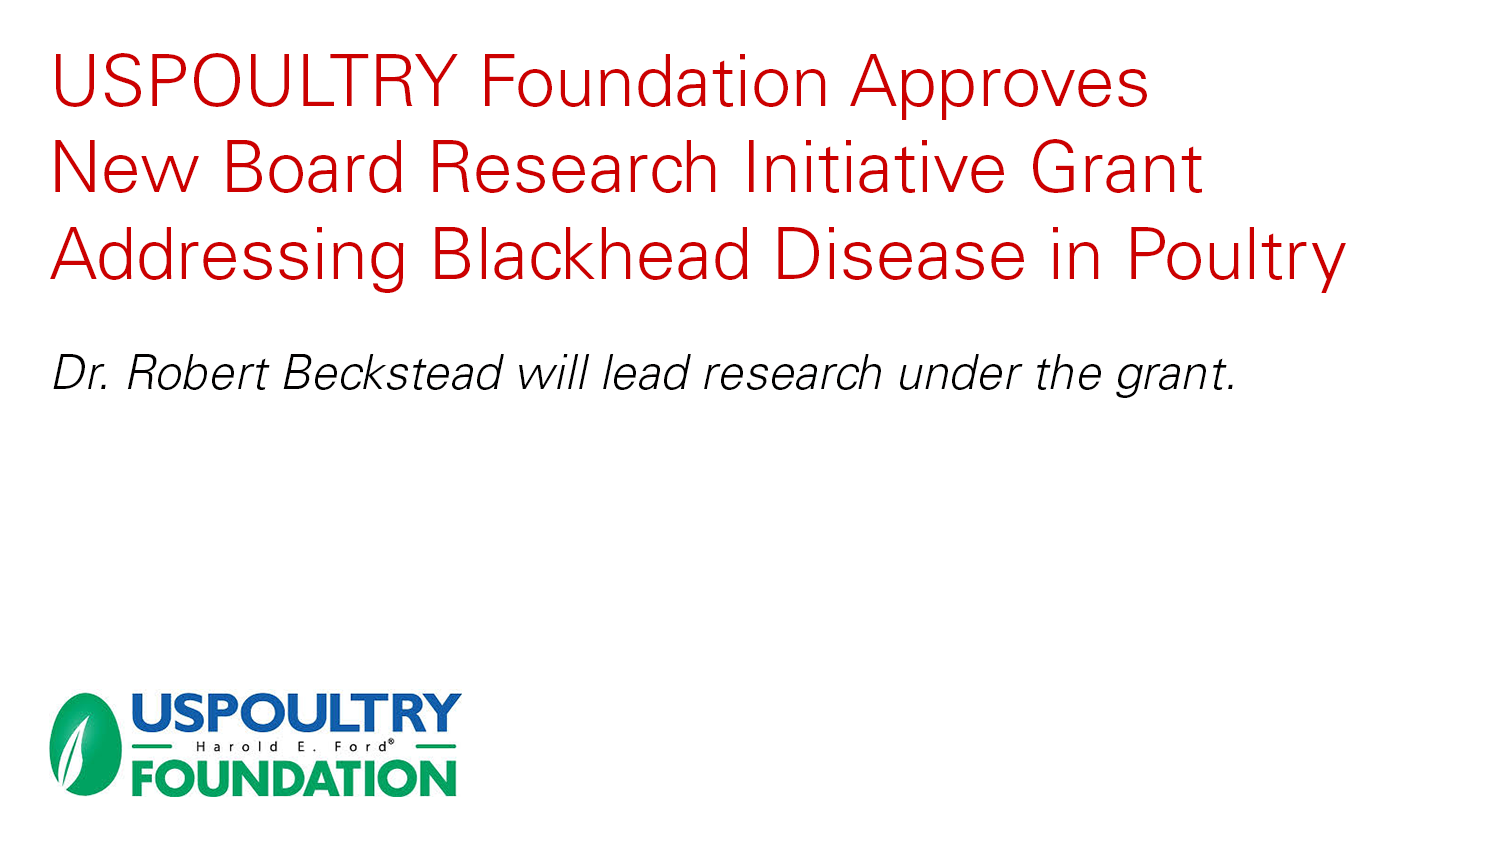 USPOULTRY Foundation Approves New Board Research Initiative Grant Addressing Blackhead Disease in Poultry: Dr. Robert Beckstead will lead research under the grant. - with USPoultry Federation logo